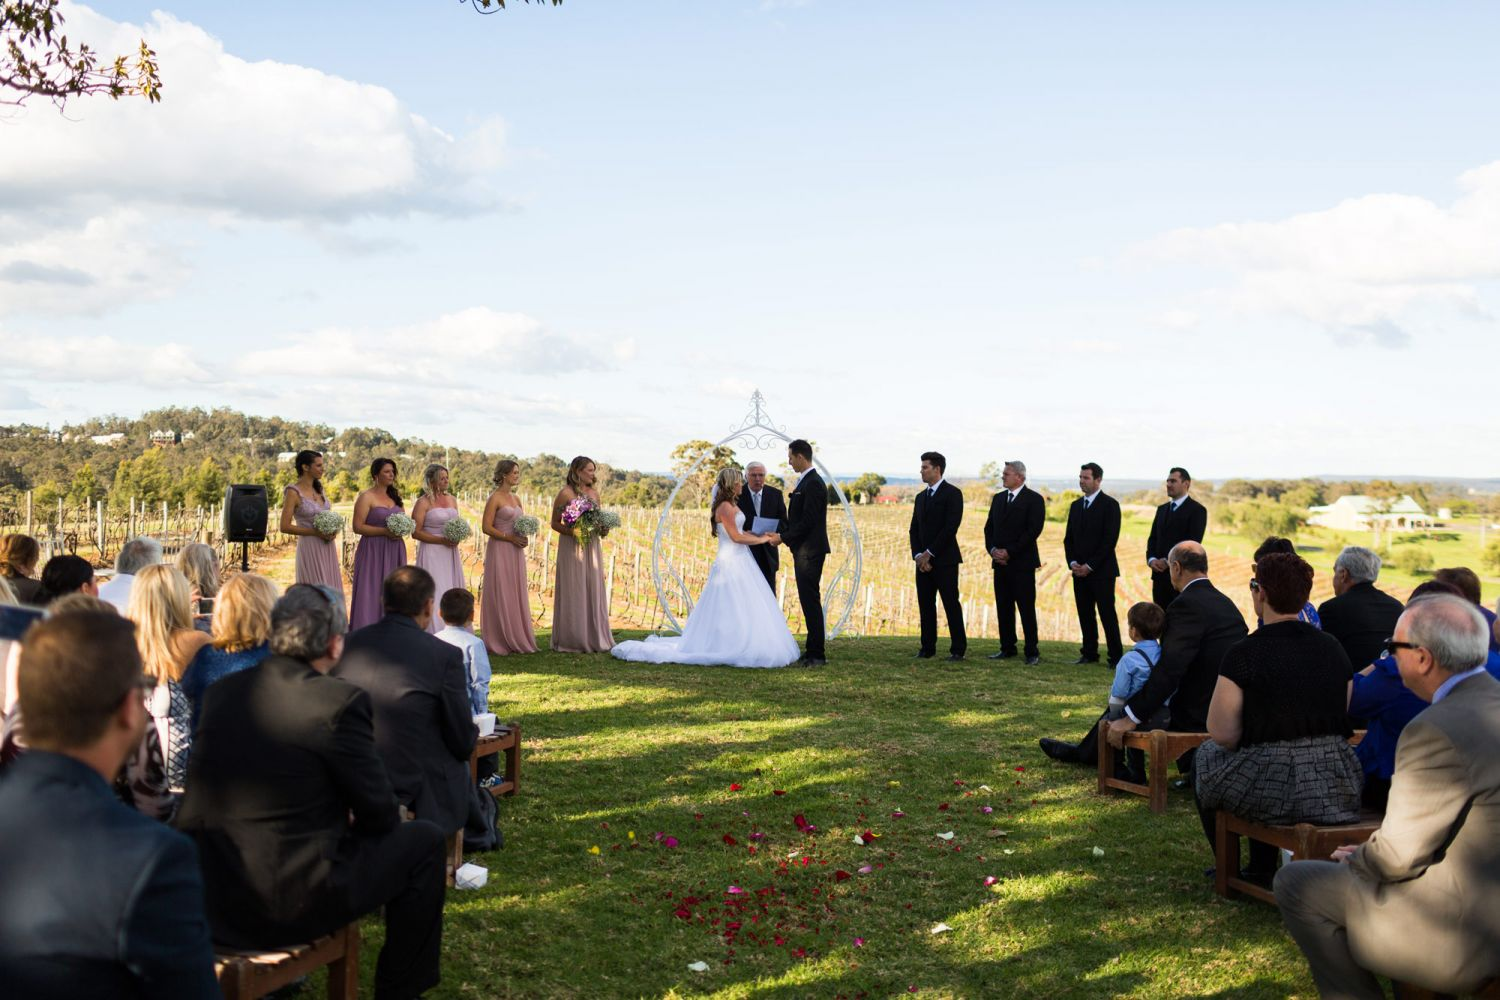 7_wedding-ceremony-at-lindemans-in-the-hunter-valley